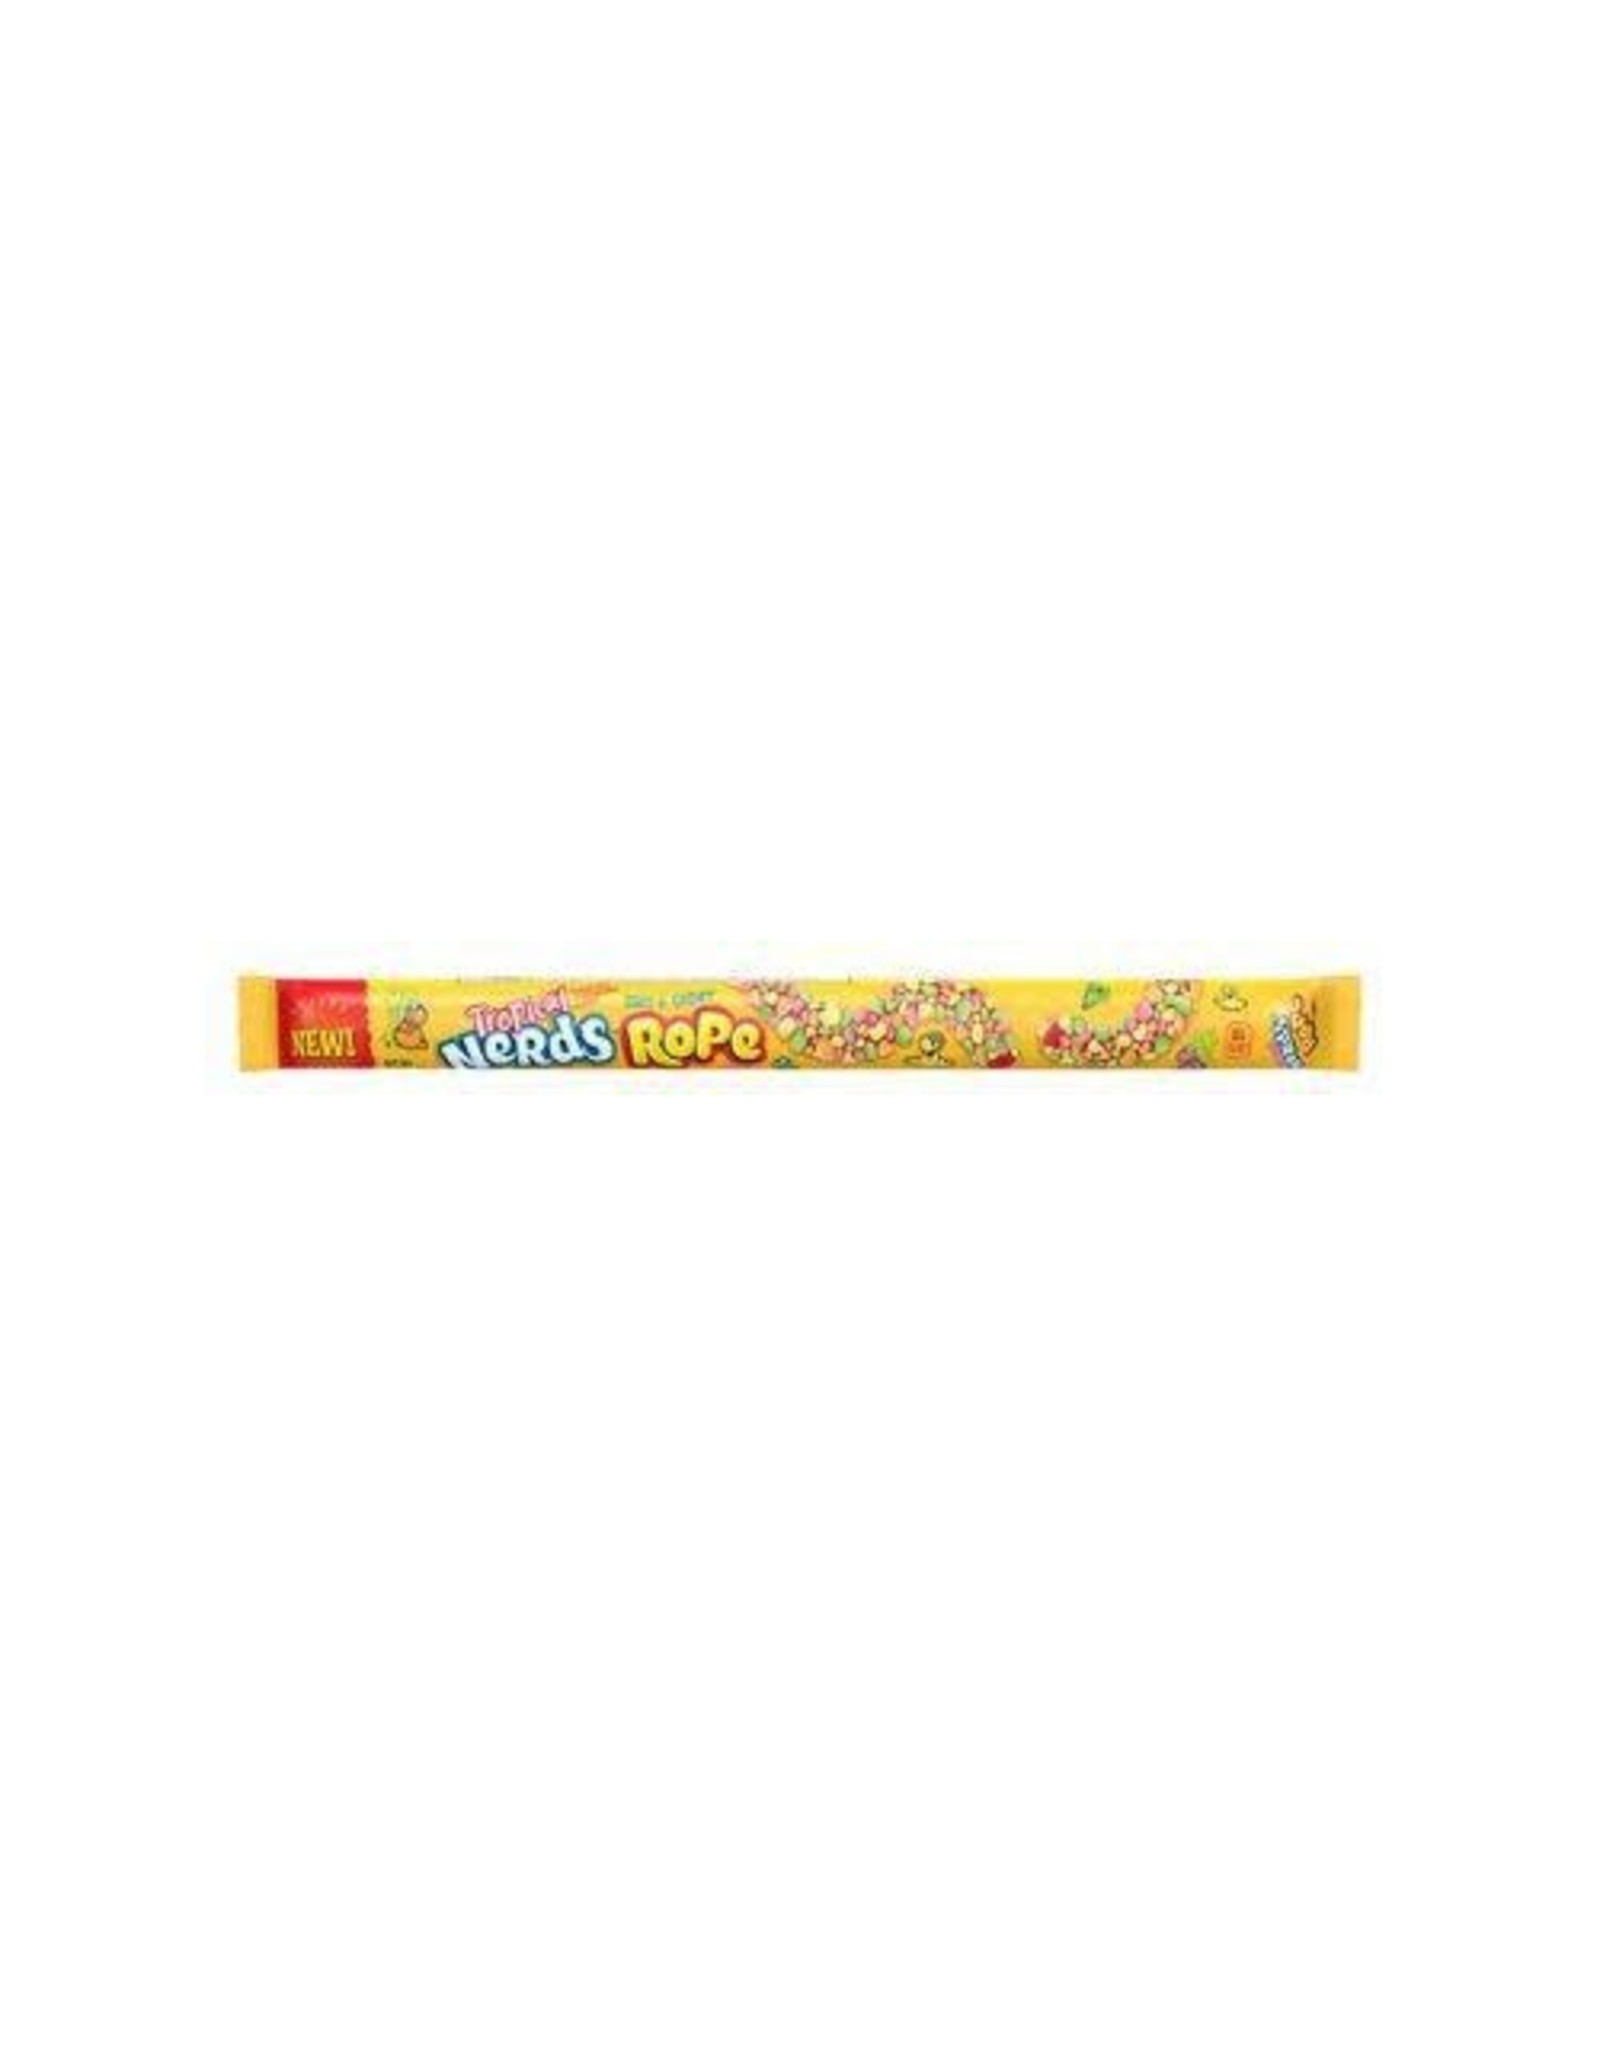 Nerds Rope Tropical - 26g